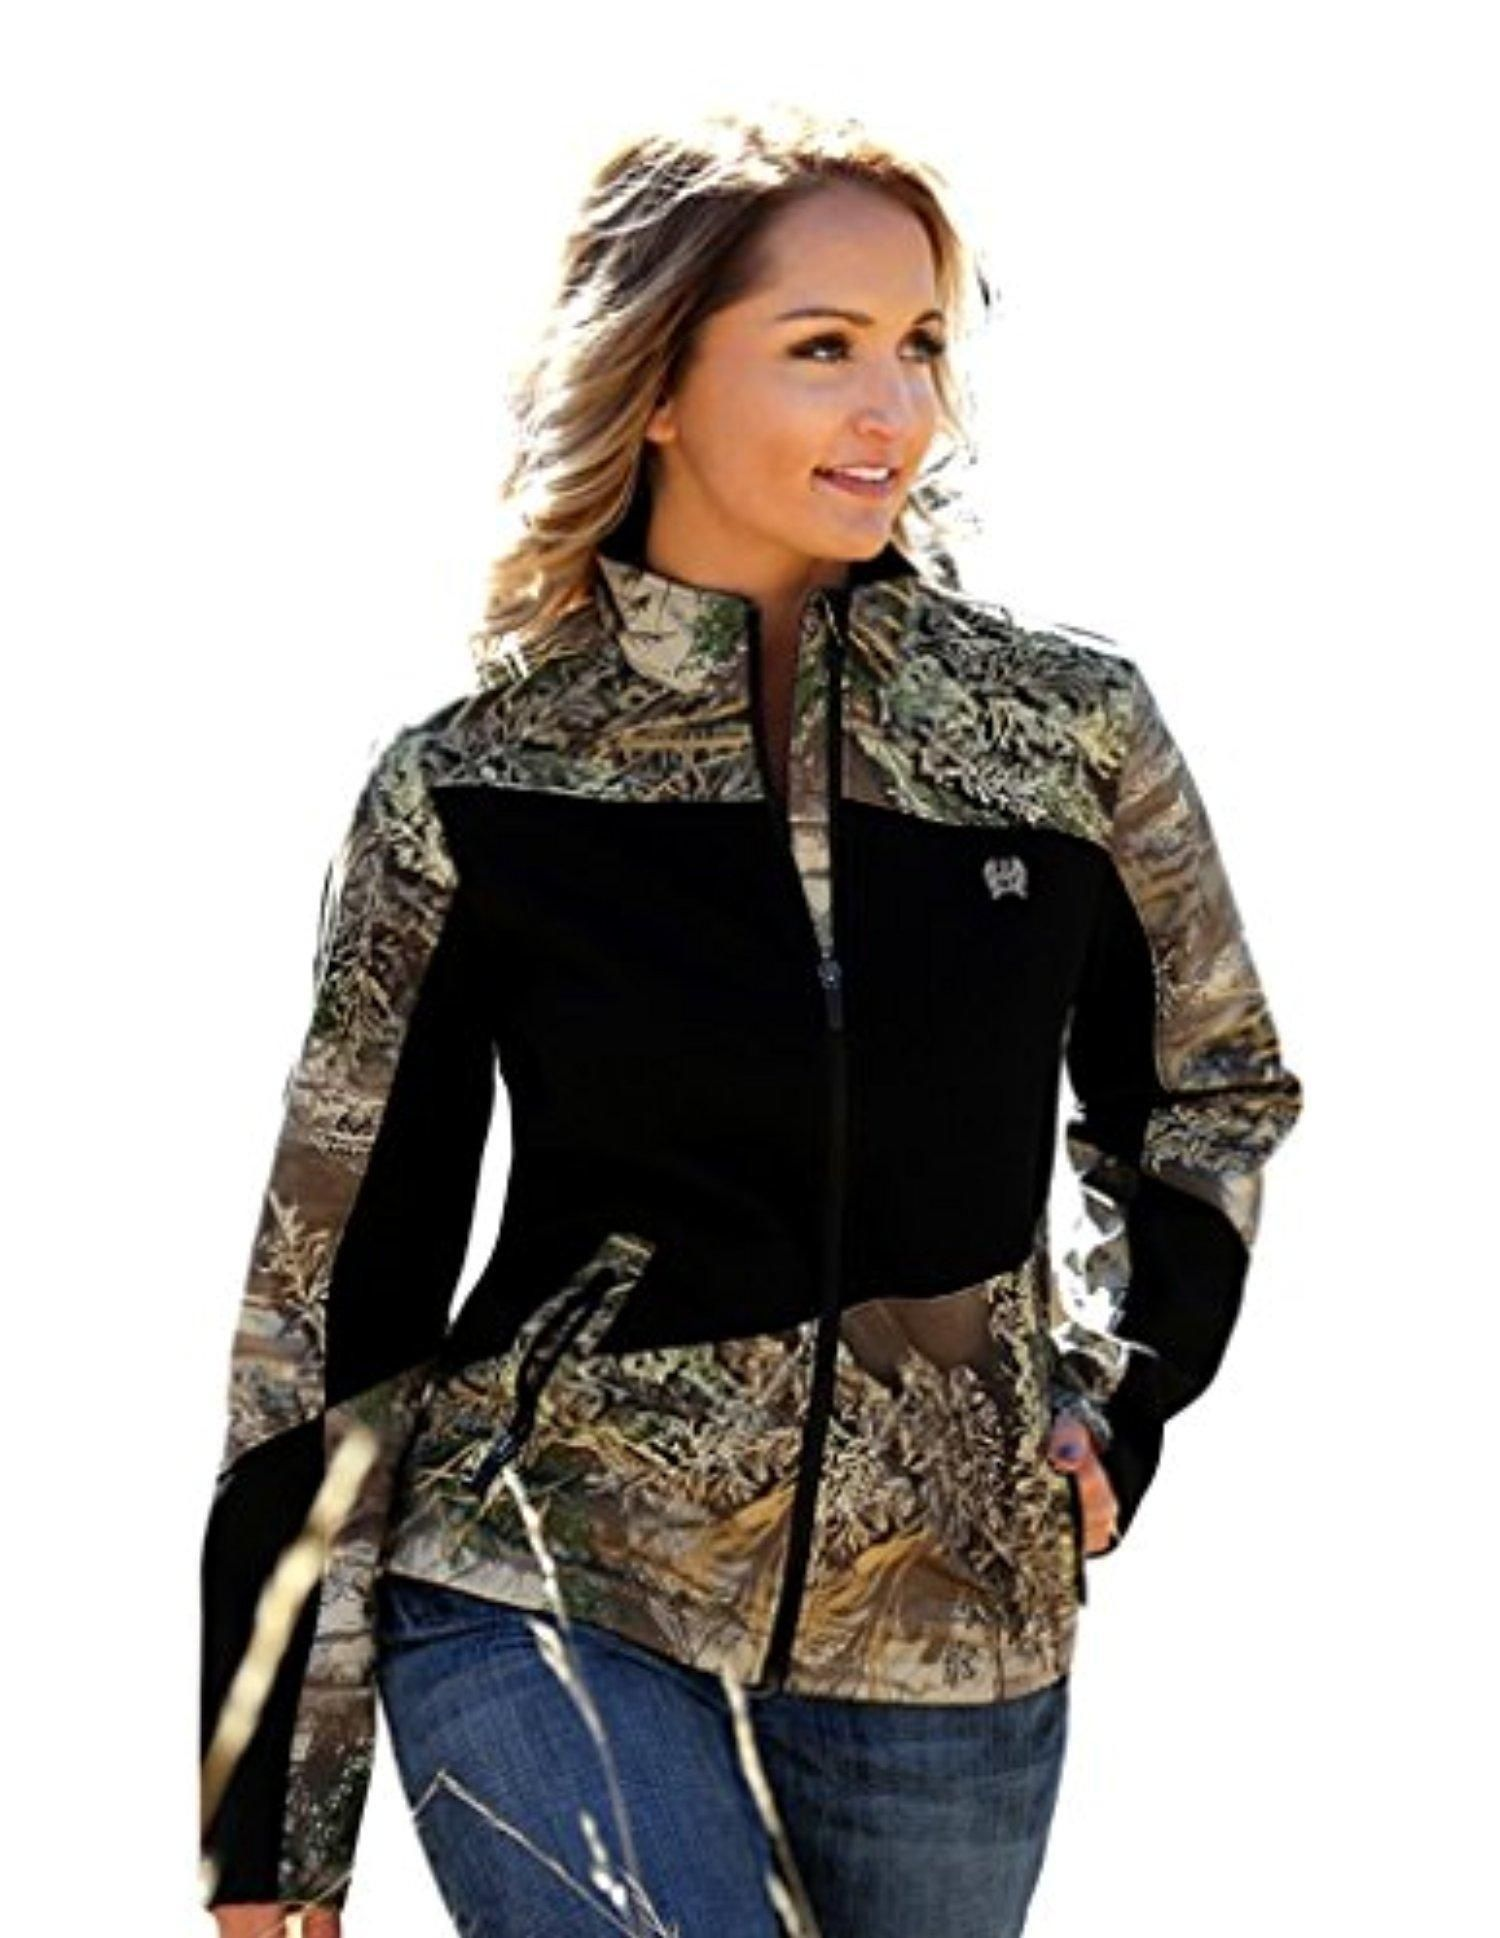 ed4fc4f65cdf1 This womens bonded hybrid jacket from Cinch s Outdoor collection features a  camo print with black inserts